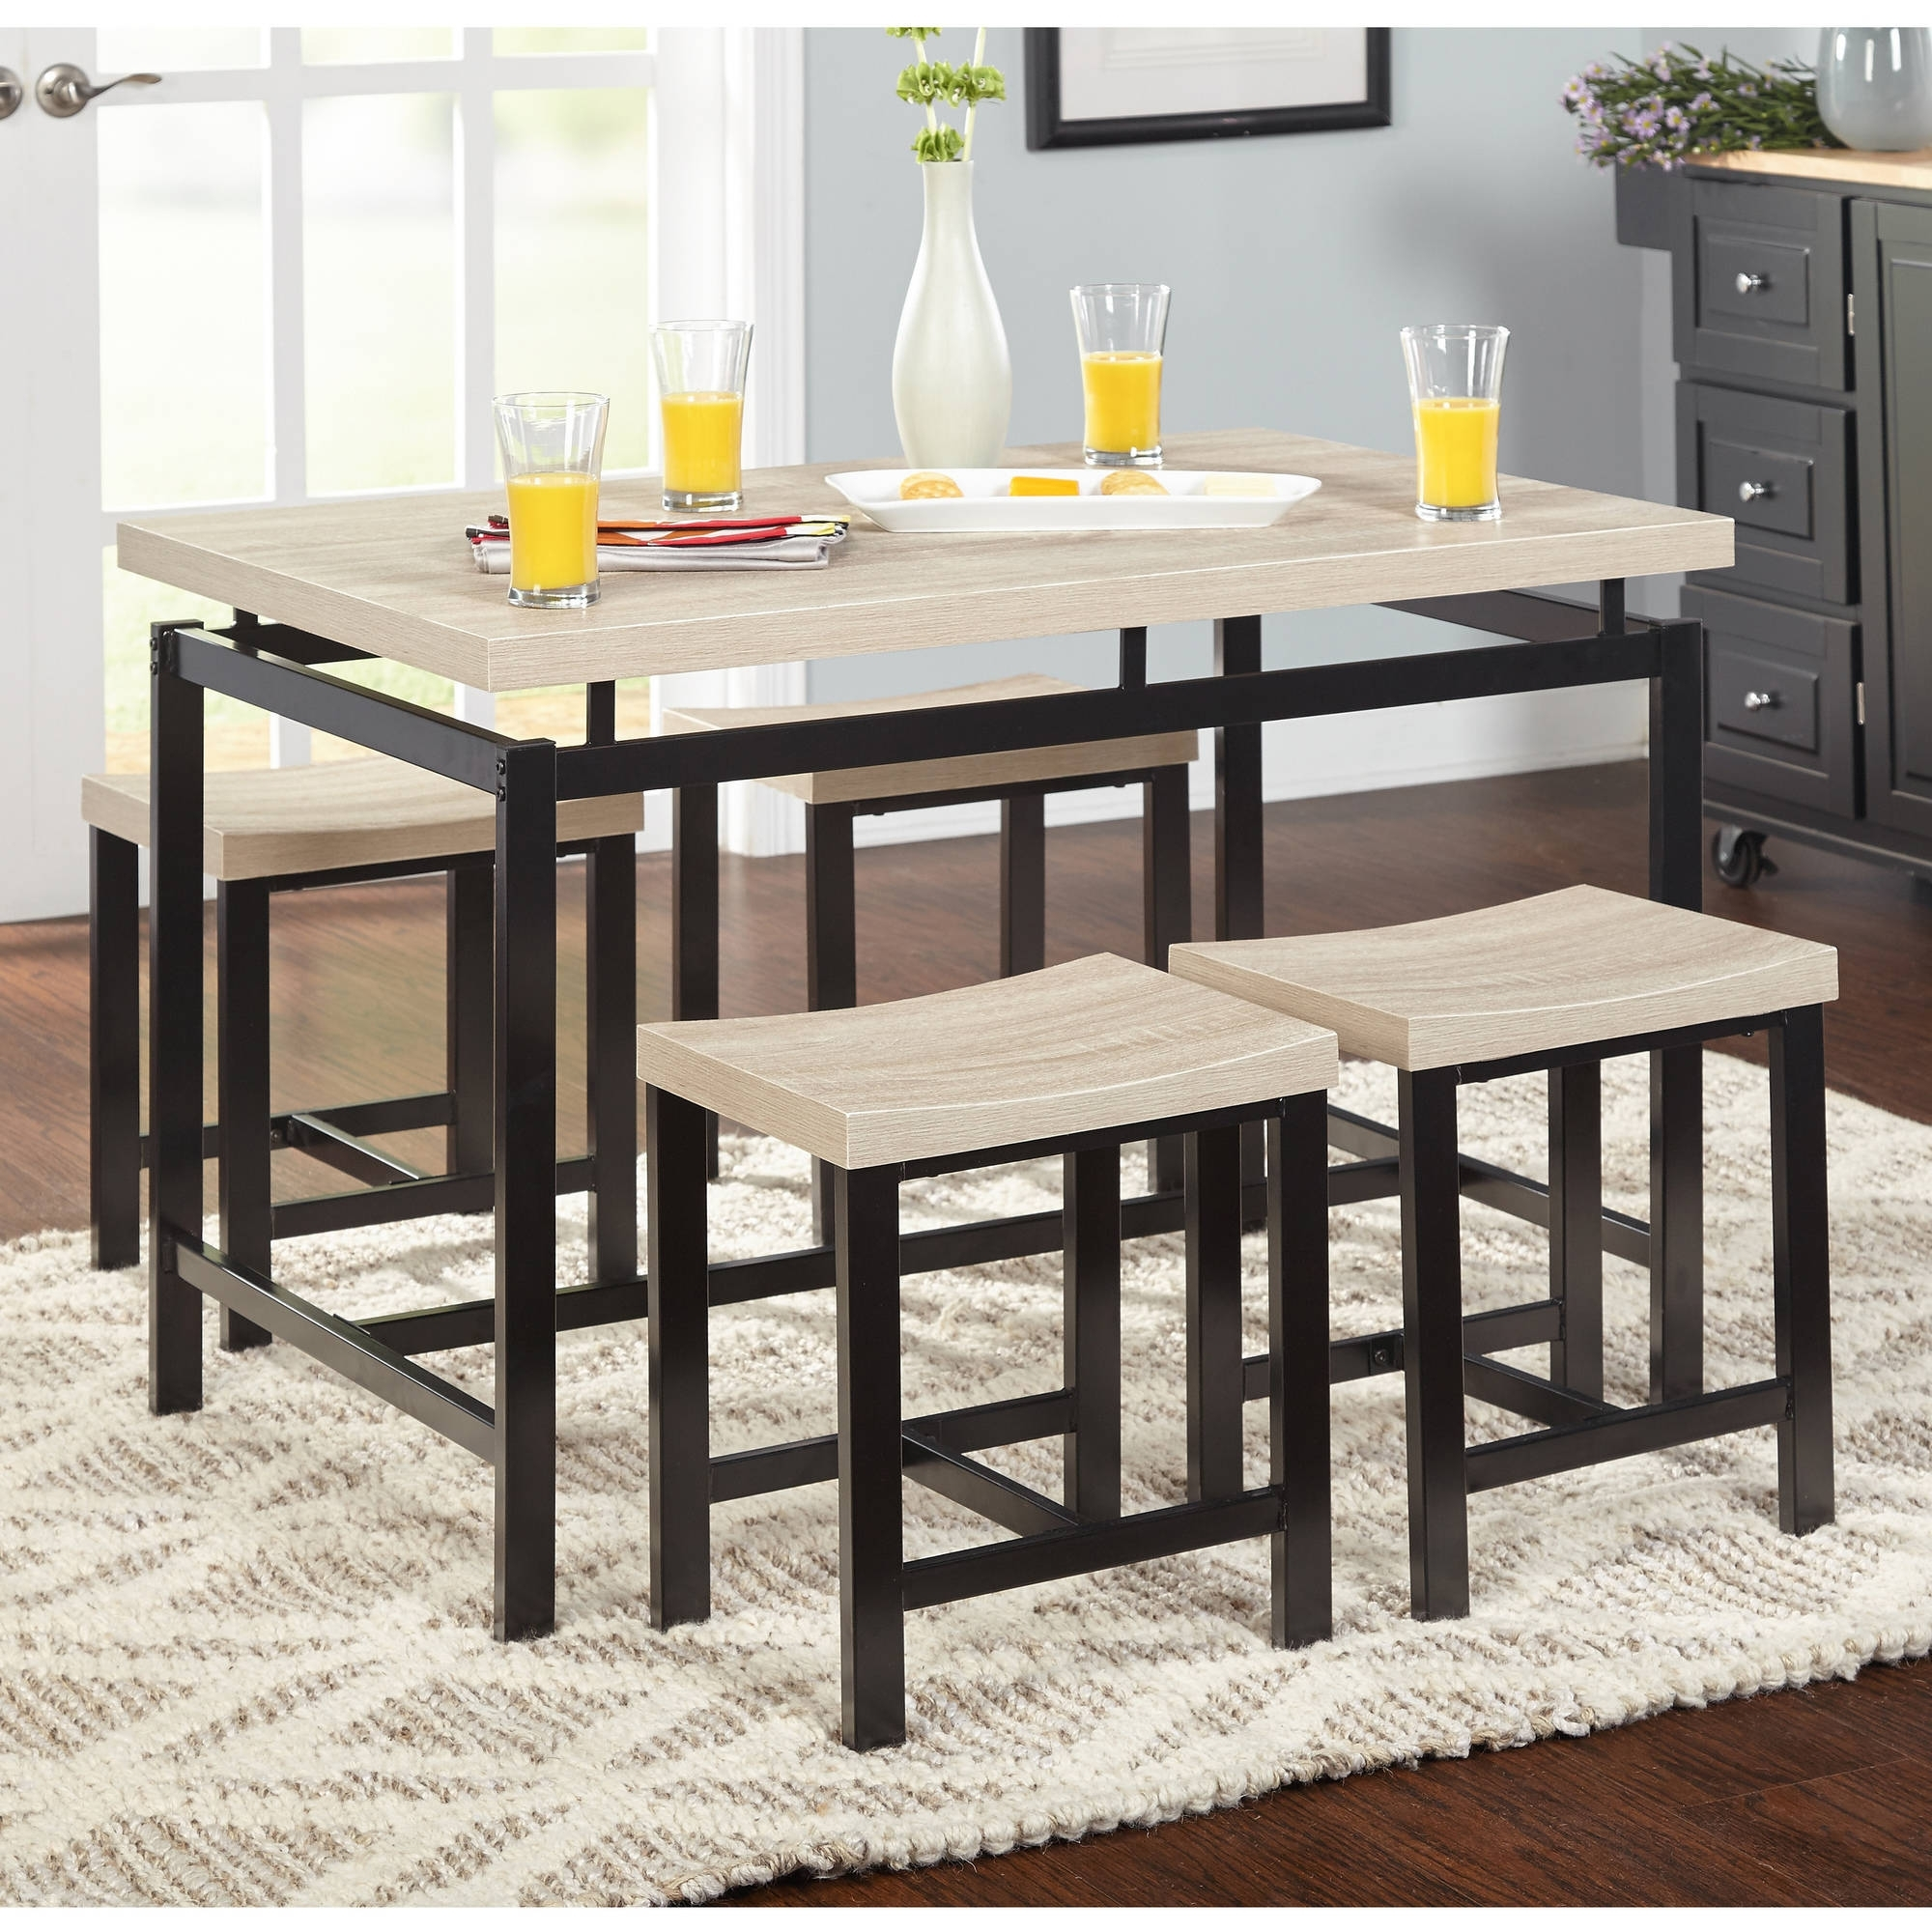 Macie 5 Piece Round Dining Sets Intended For Best And Newest Black Wood Dining Set Contemporary 5 Piece Delano Natural Walmart (View 17 of 25)